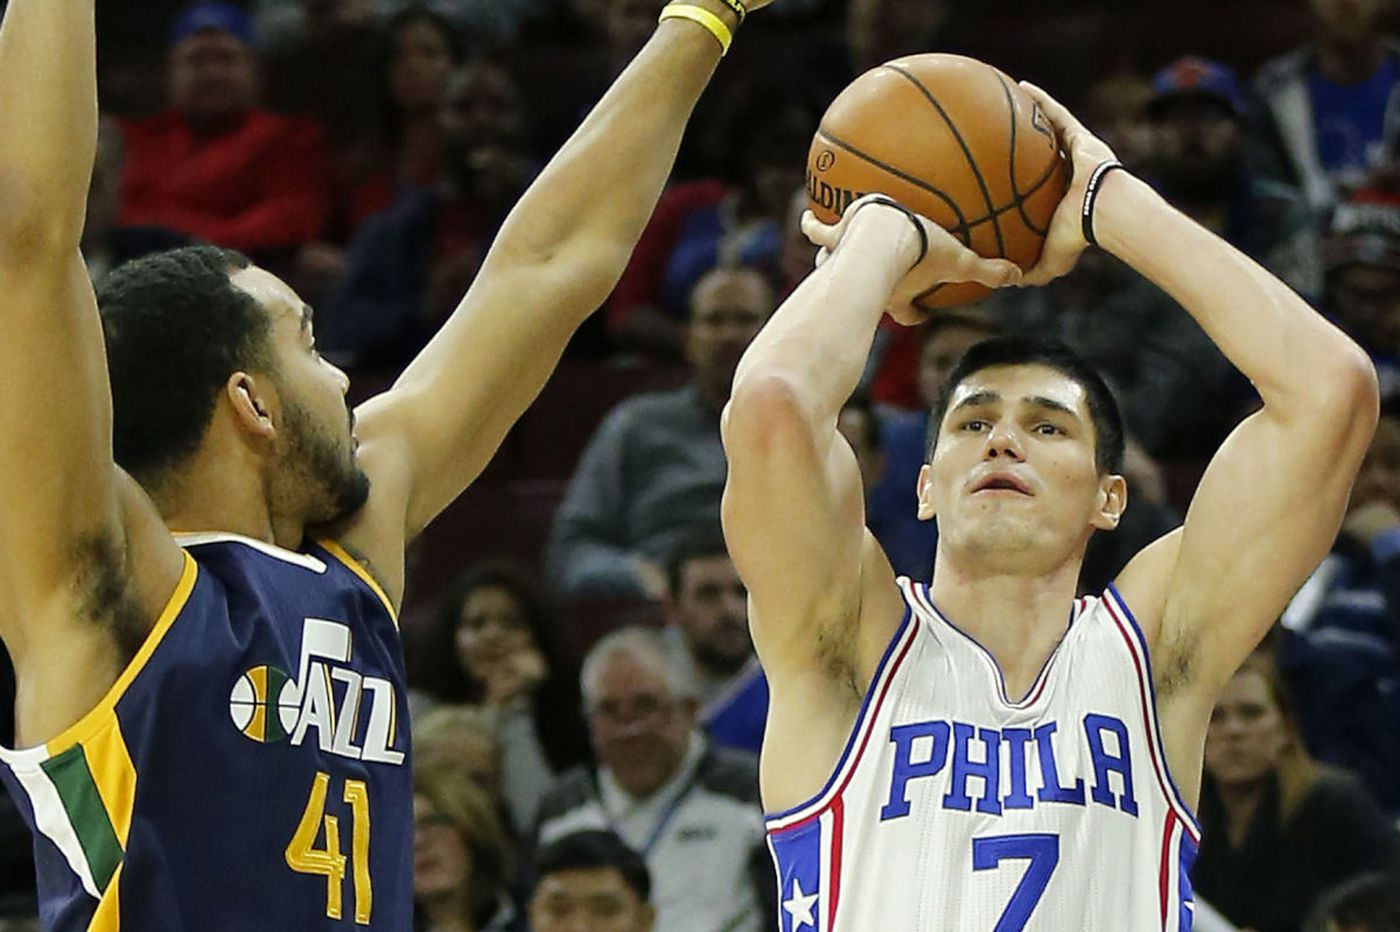 Cooney: Ersan Ilyasova is one Sixer who complements Joel Embiid well